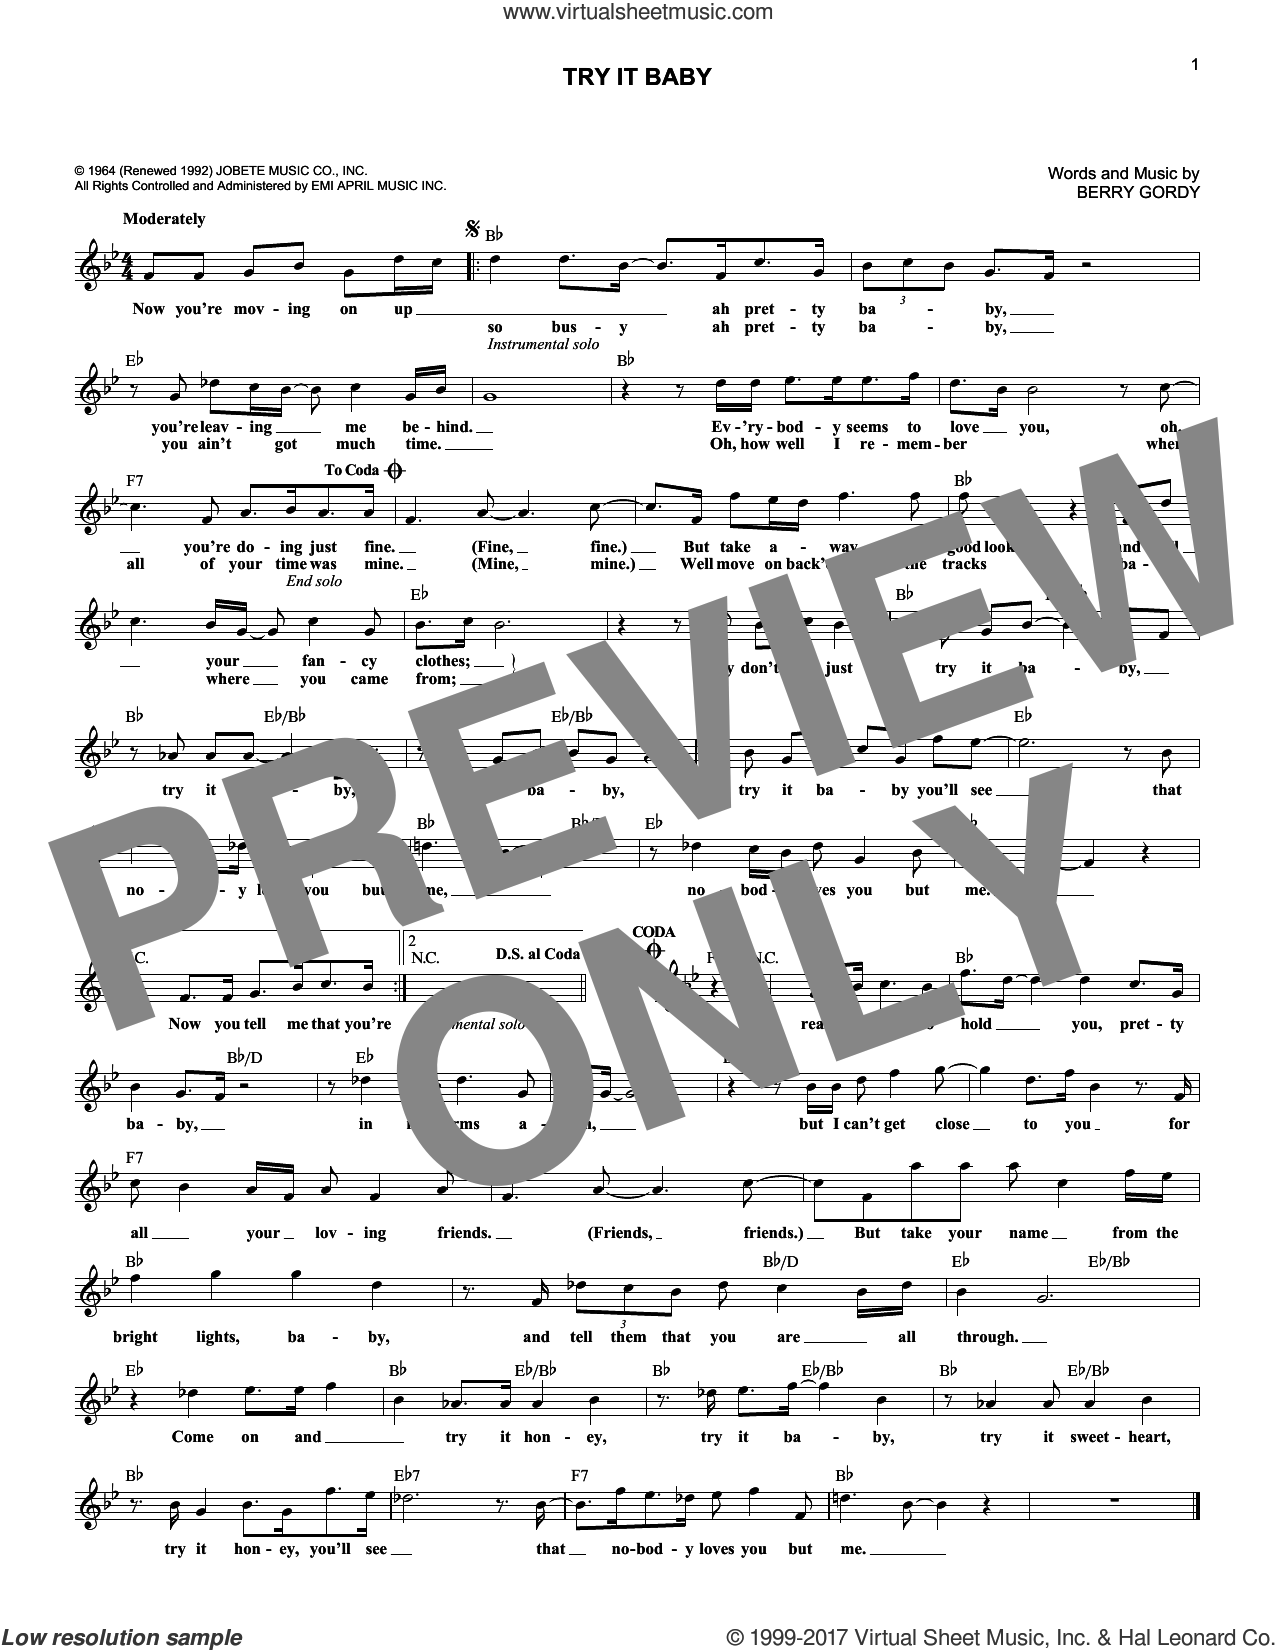 Try It Baby sheet music for voice and other instruments (fake book) by Berry Gordy and Marvin Gaye, intermediate